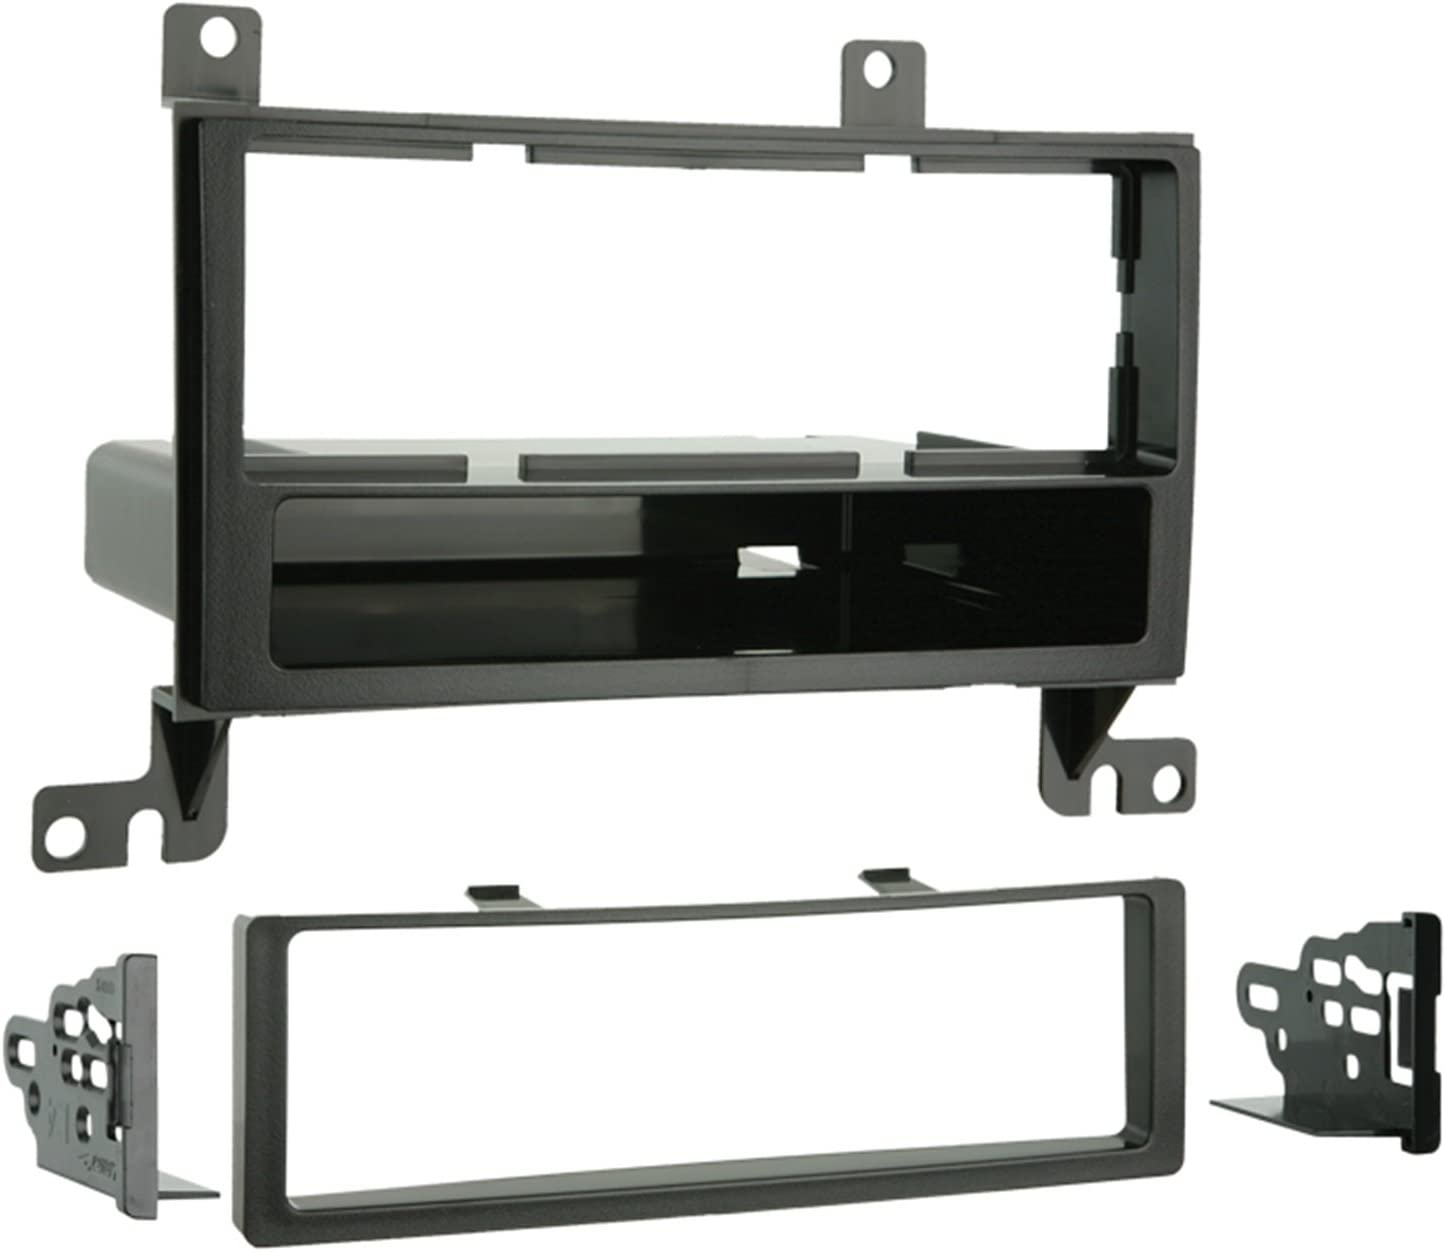 Metra 99-7325 Single DIN Installation Kit with Pocket for 2007 Hyundai Santa Fe (Black) (Discontinued by Manufacturer)